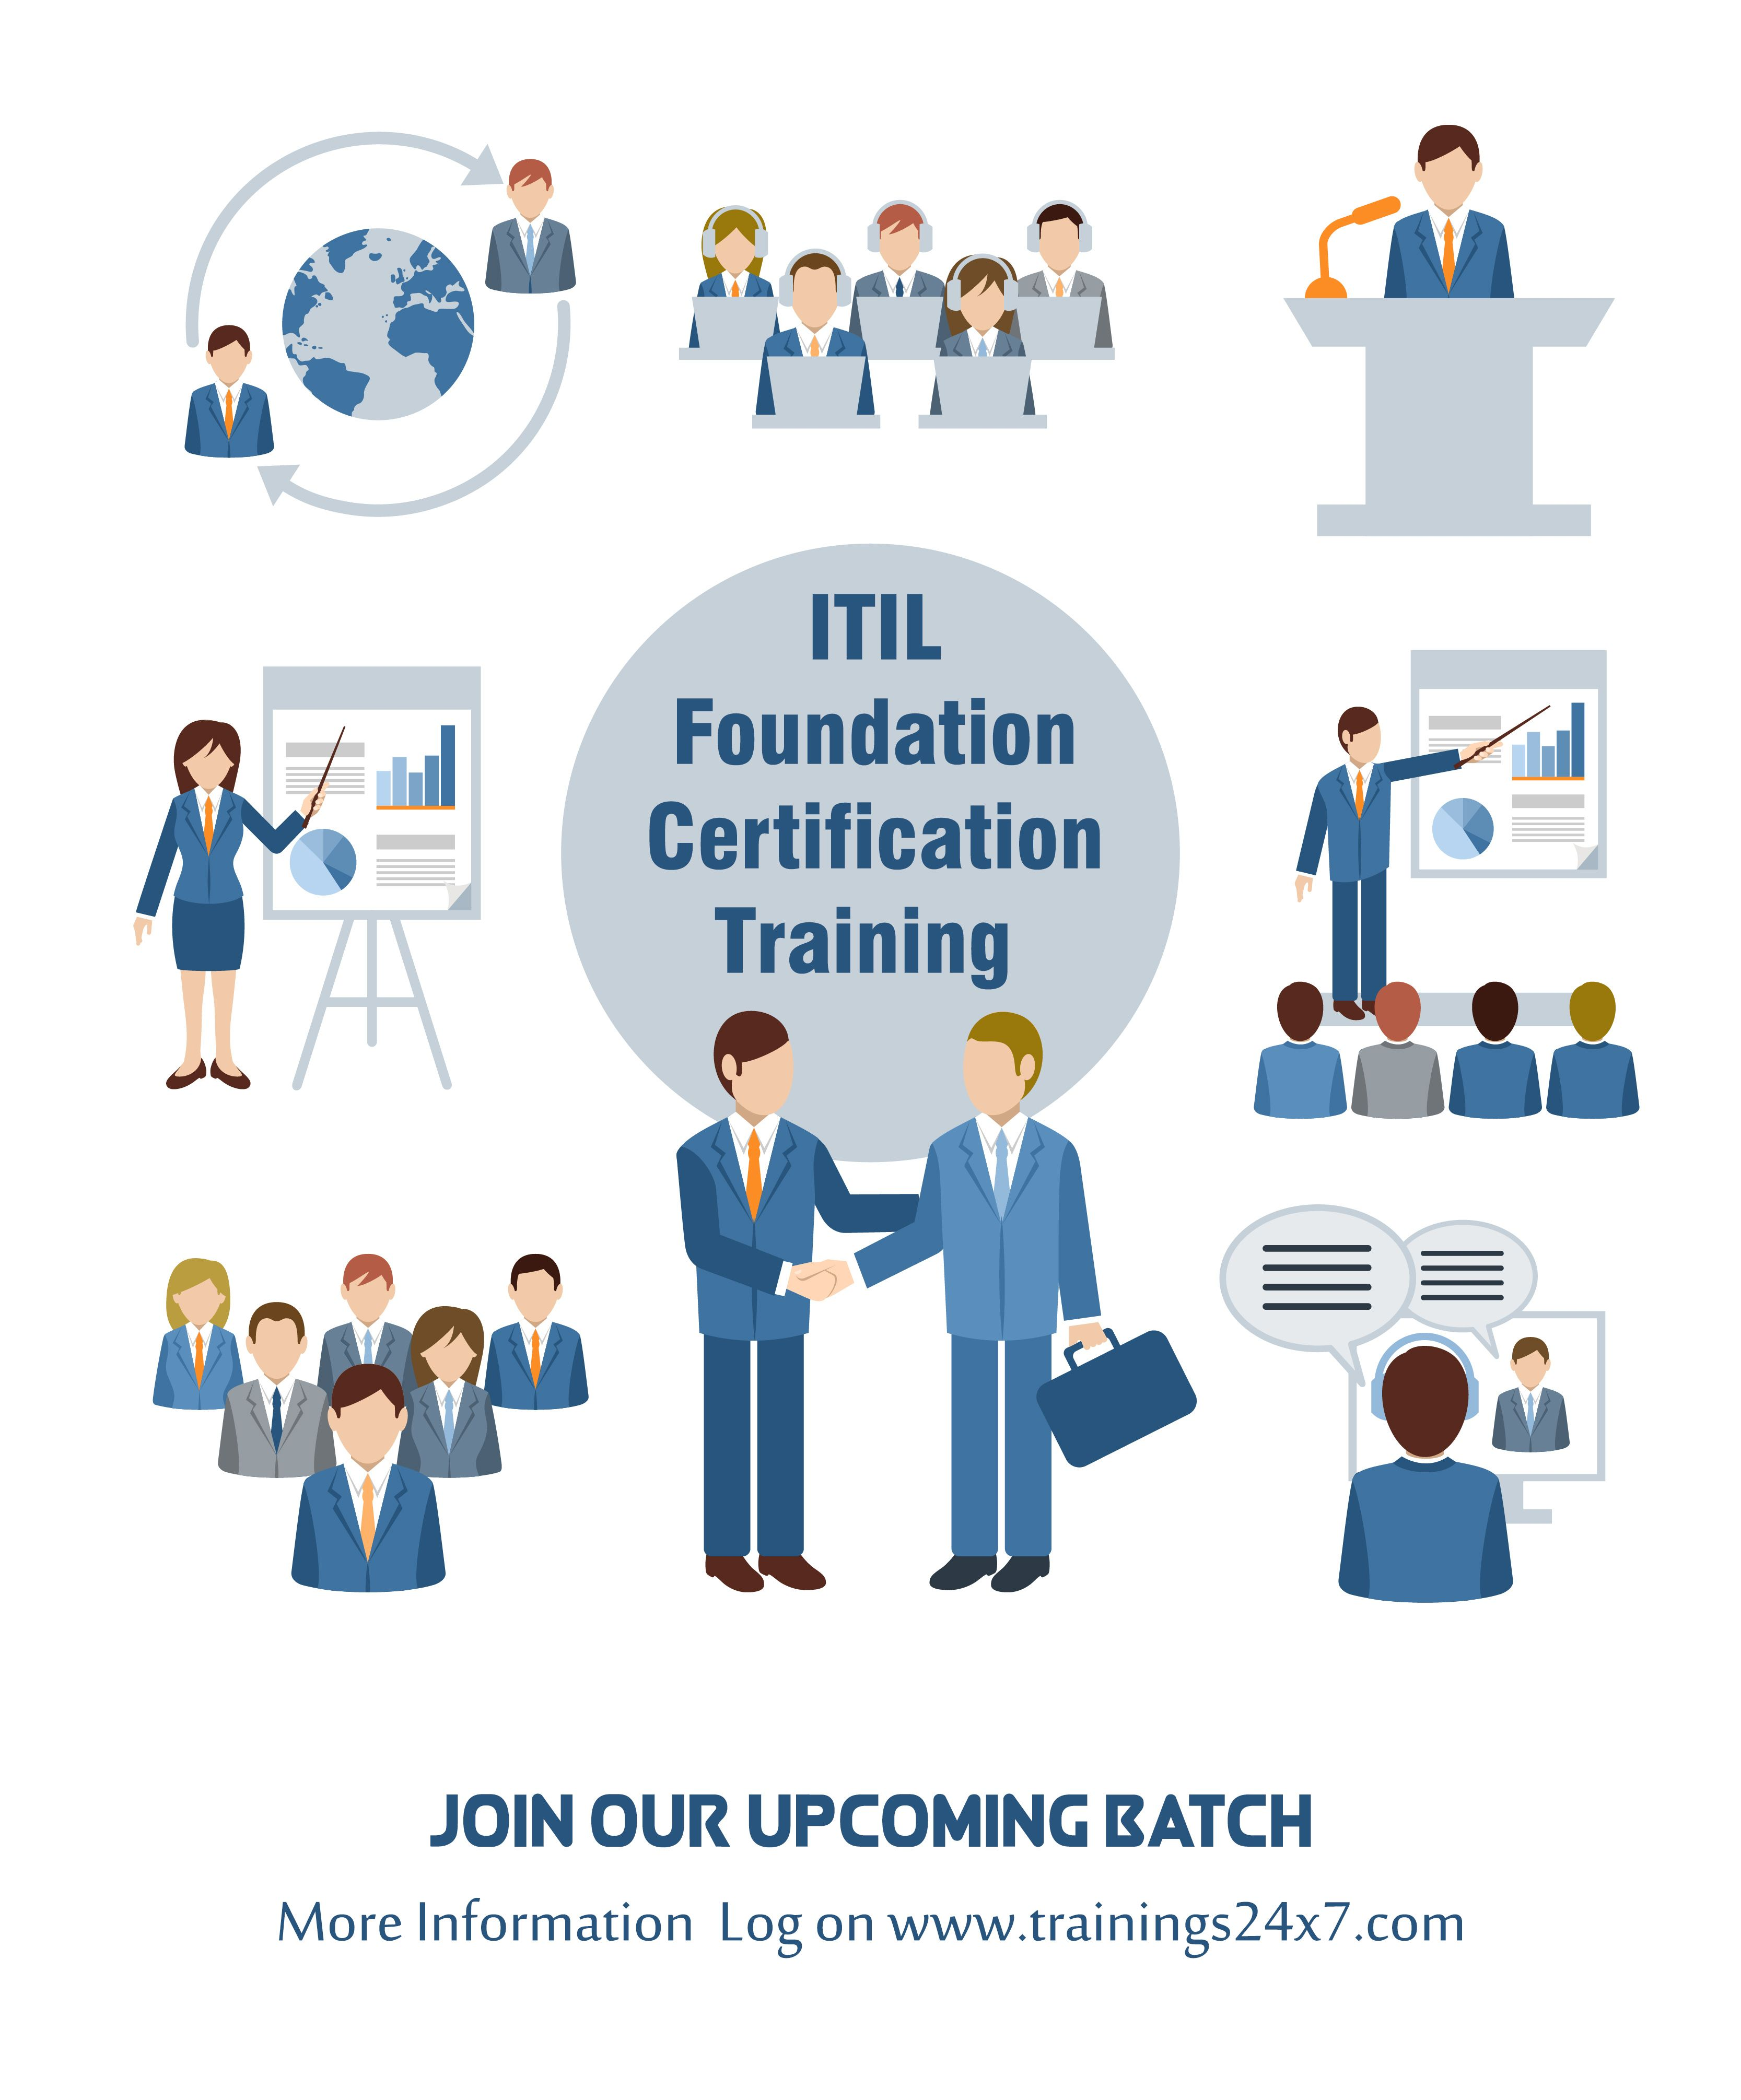 Clear The Itil Foundation Certification Exam In Your First Attempt